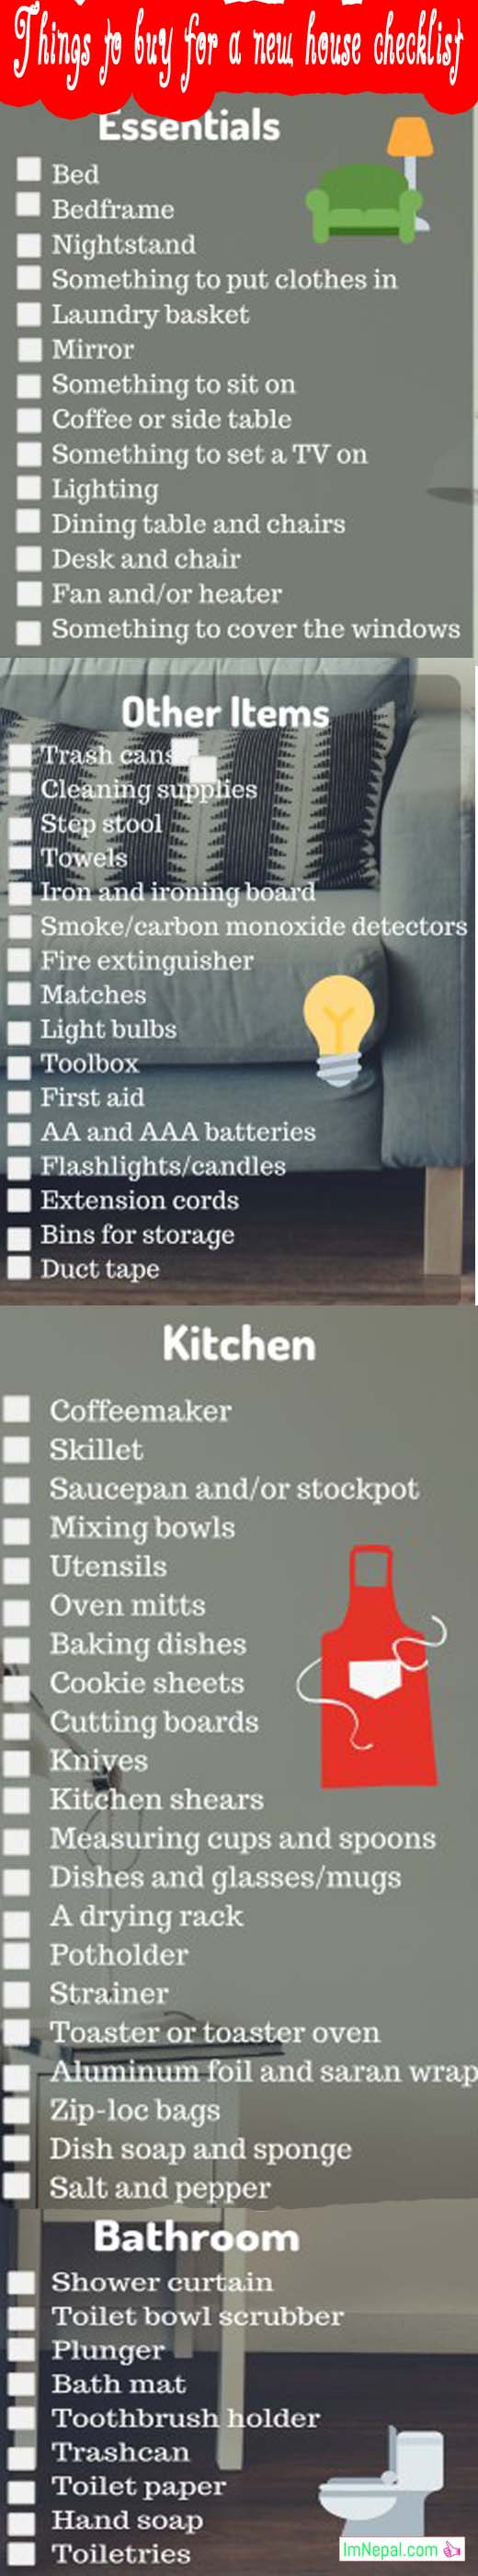 things to buy for a new house checklist